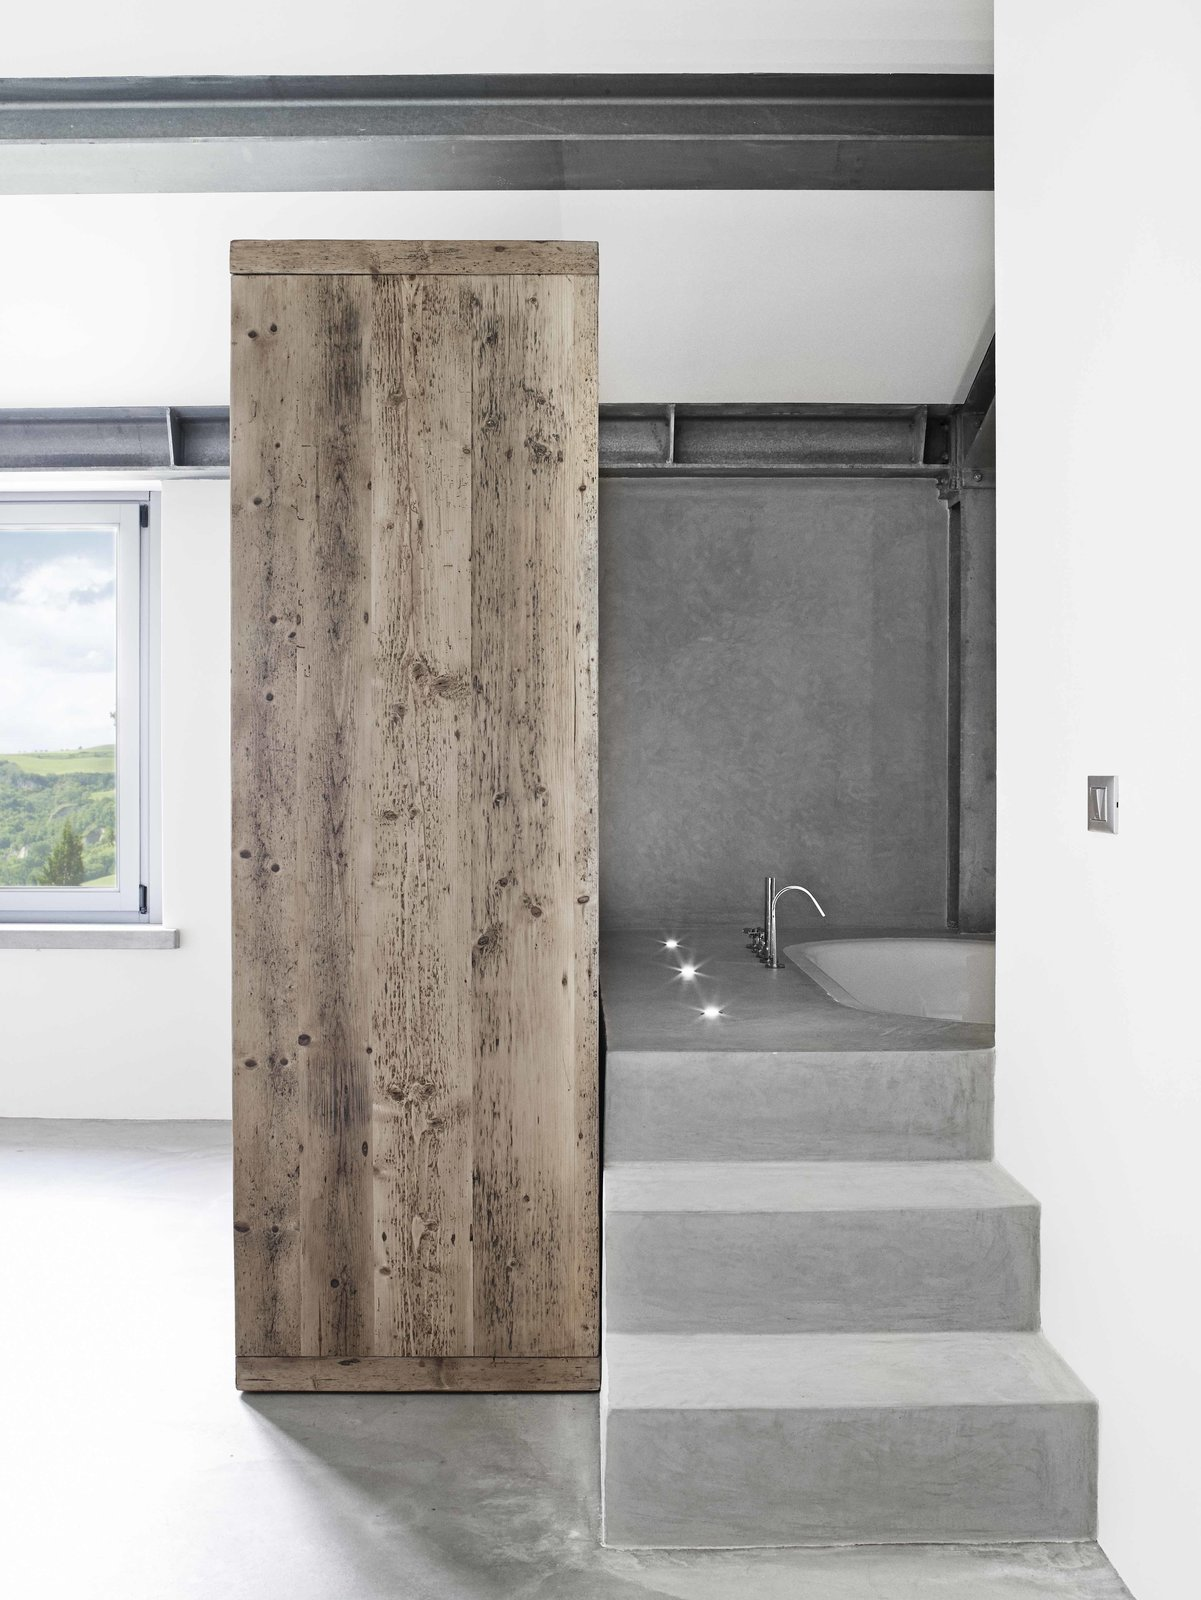 Tagged: Bath Room, Undermount Tub, Soaking Tub, and Concrete Floor. Stay in a Modern, Industrial Home That's Hidden Inside a Traditional Tuscan Villa - Photo 10 of 11